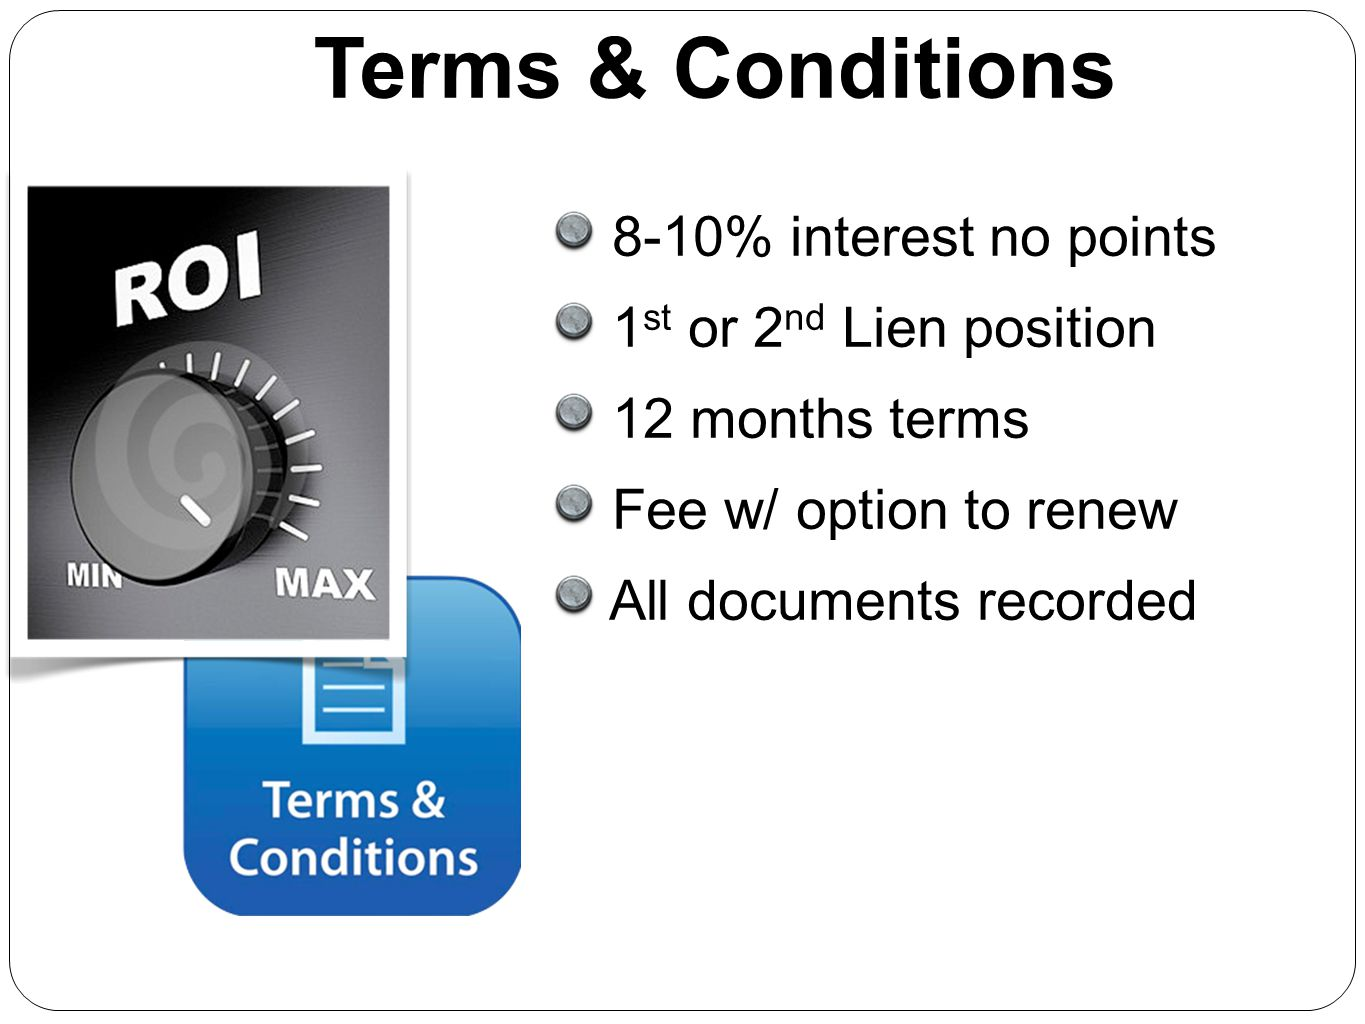 Terms & Conditions 8-10% interest no points 1st or 2nd Lien position